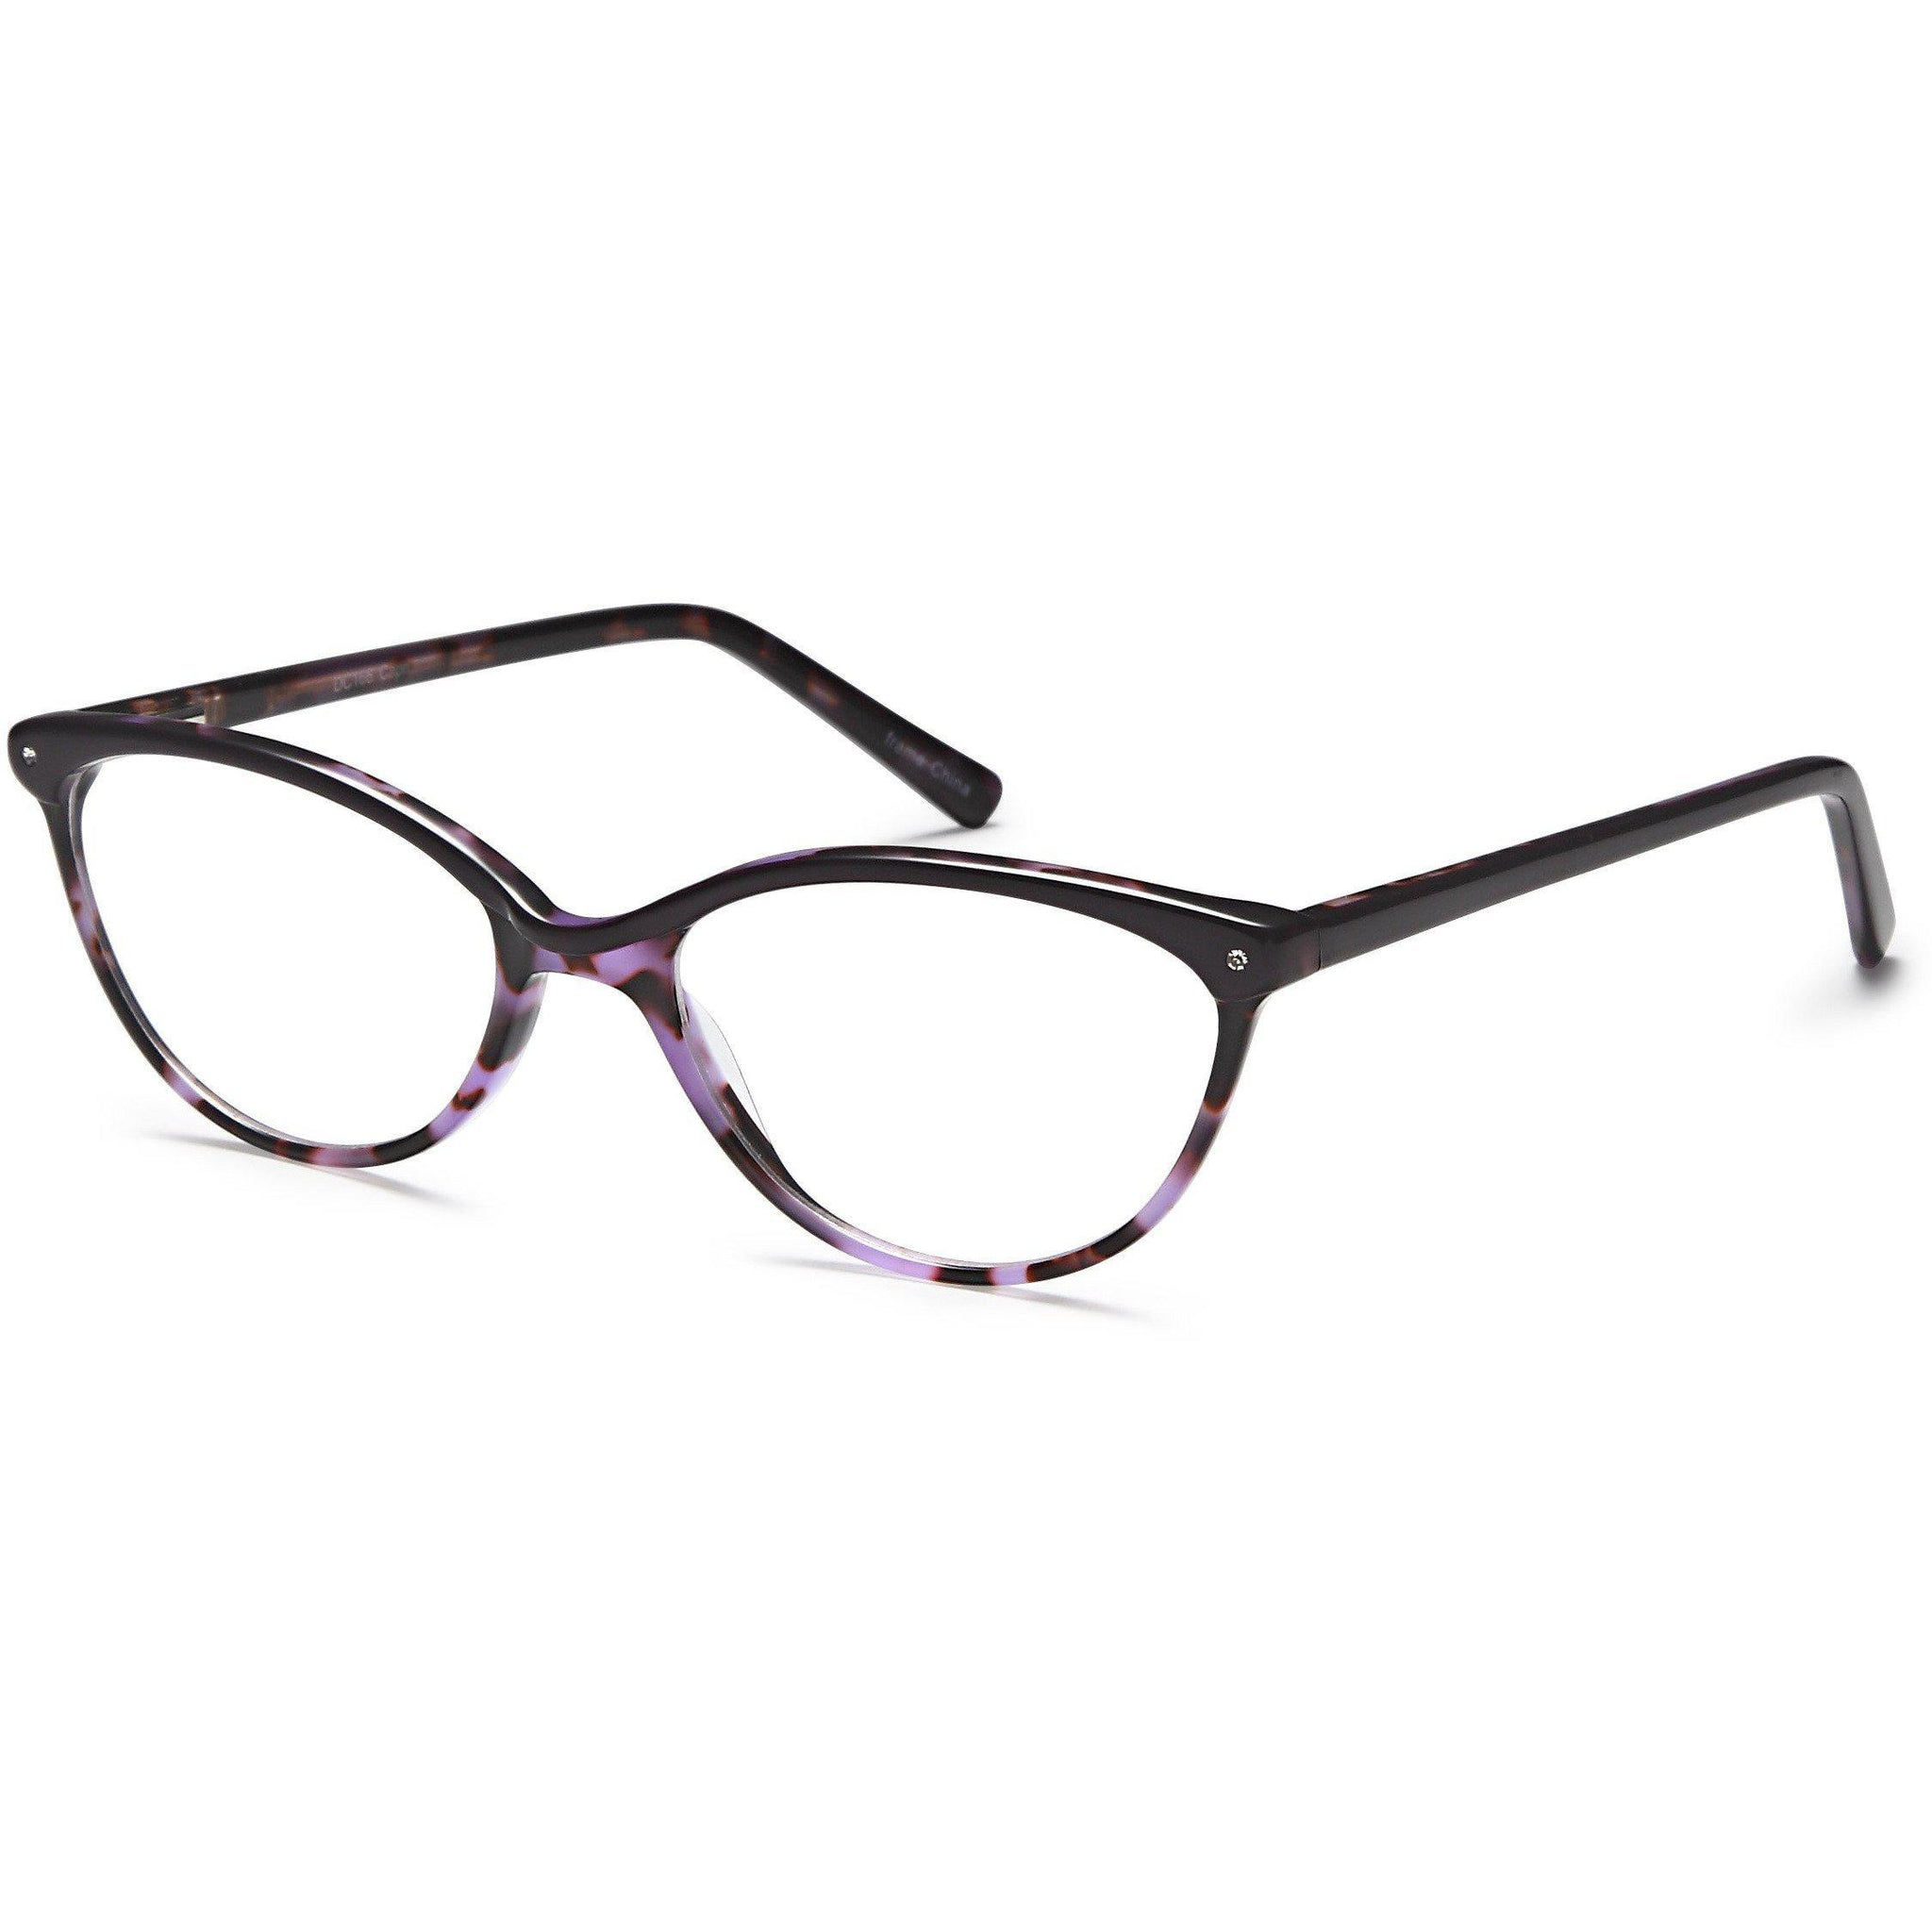 Di Caprio Prescription Glasses DC 166 Eyeglasses Frame - timetoshade